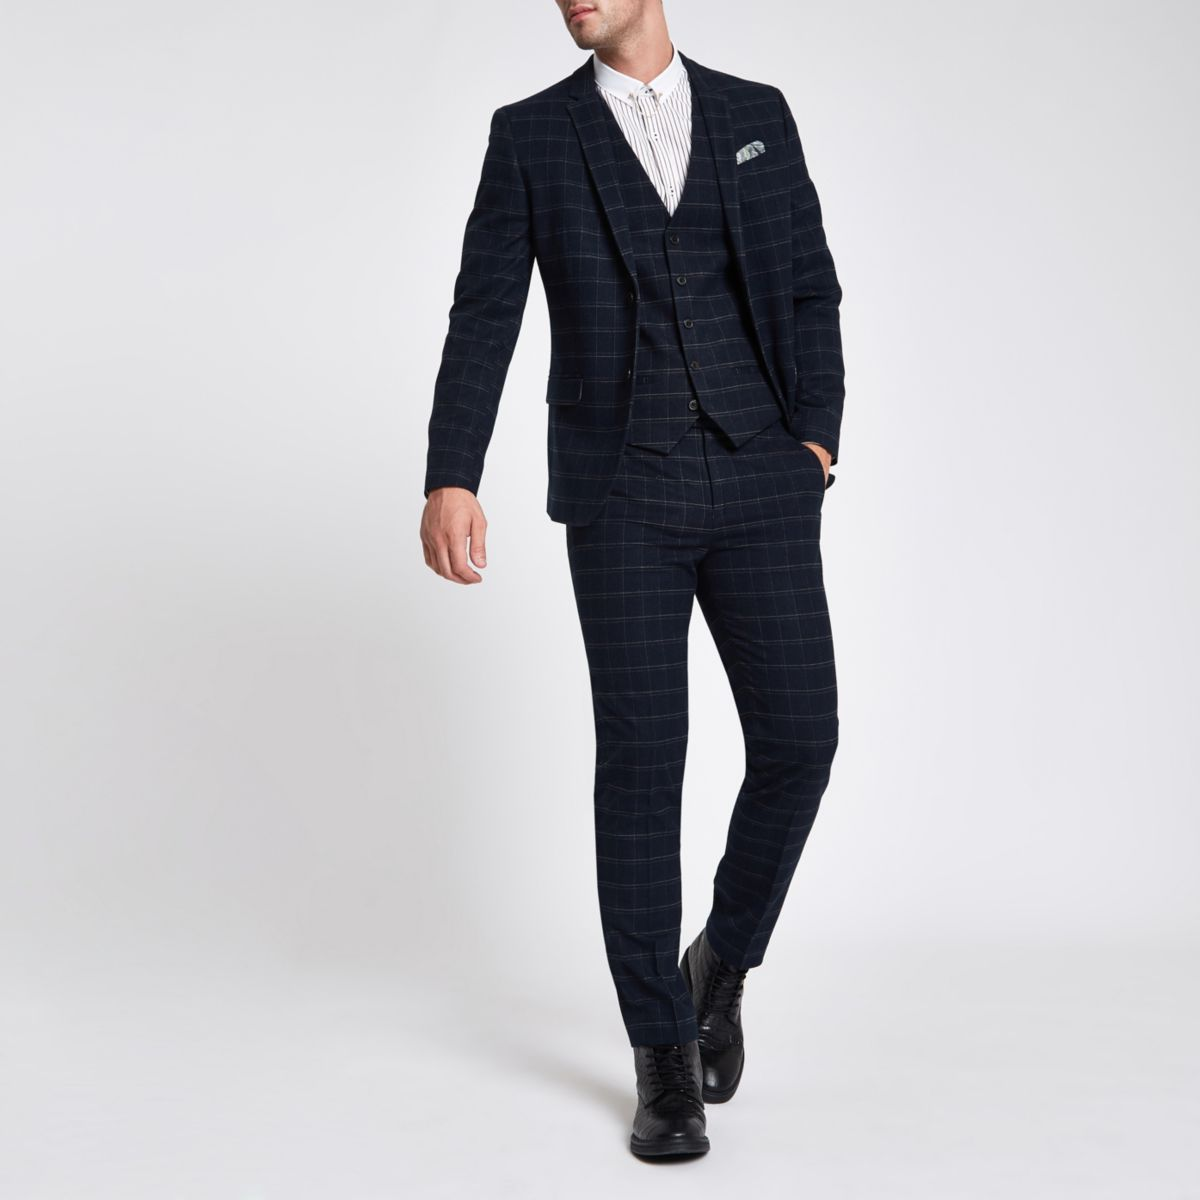 Navy window pane check skinny fit suit jacket